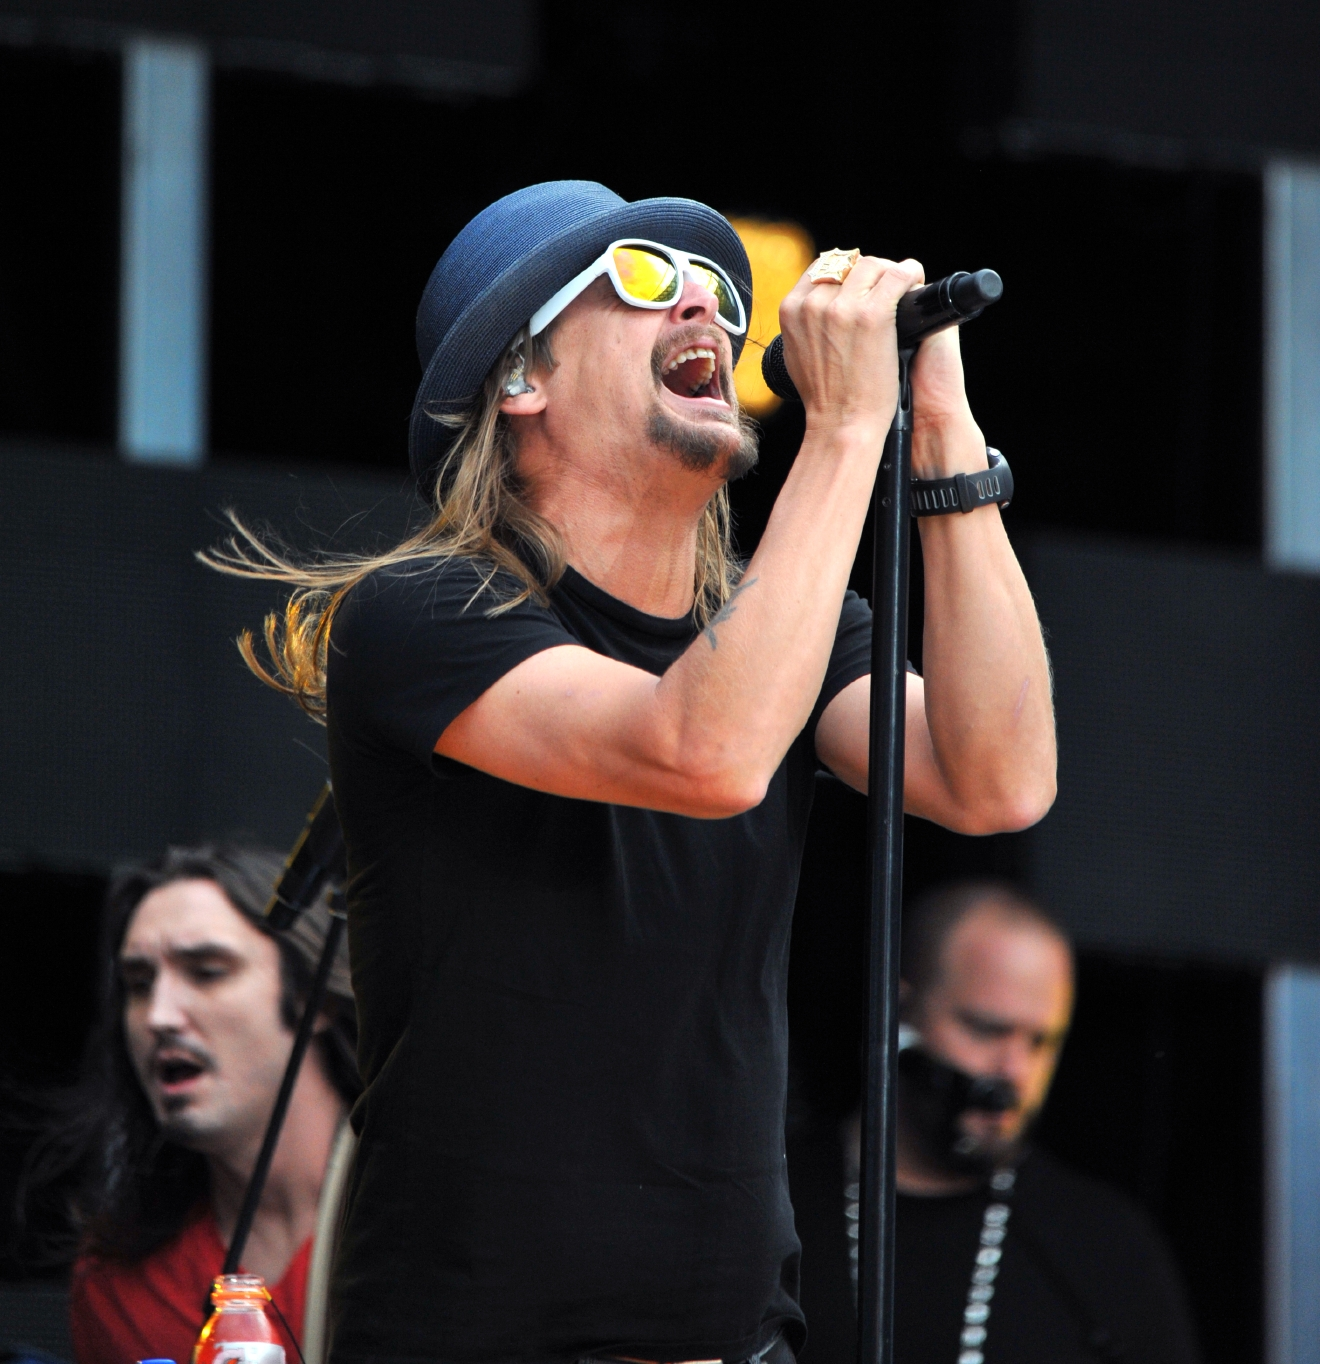 Kid Rock performing in concert at the Anz Stadium  Featuring: Kid Rock Where: Sydney, Australia When: 14 Dec 2013 Credit: WENN.com  **Not available for publication in Australia, New Zealand. No Internet Use.**